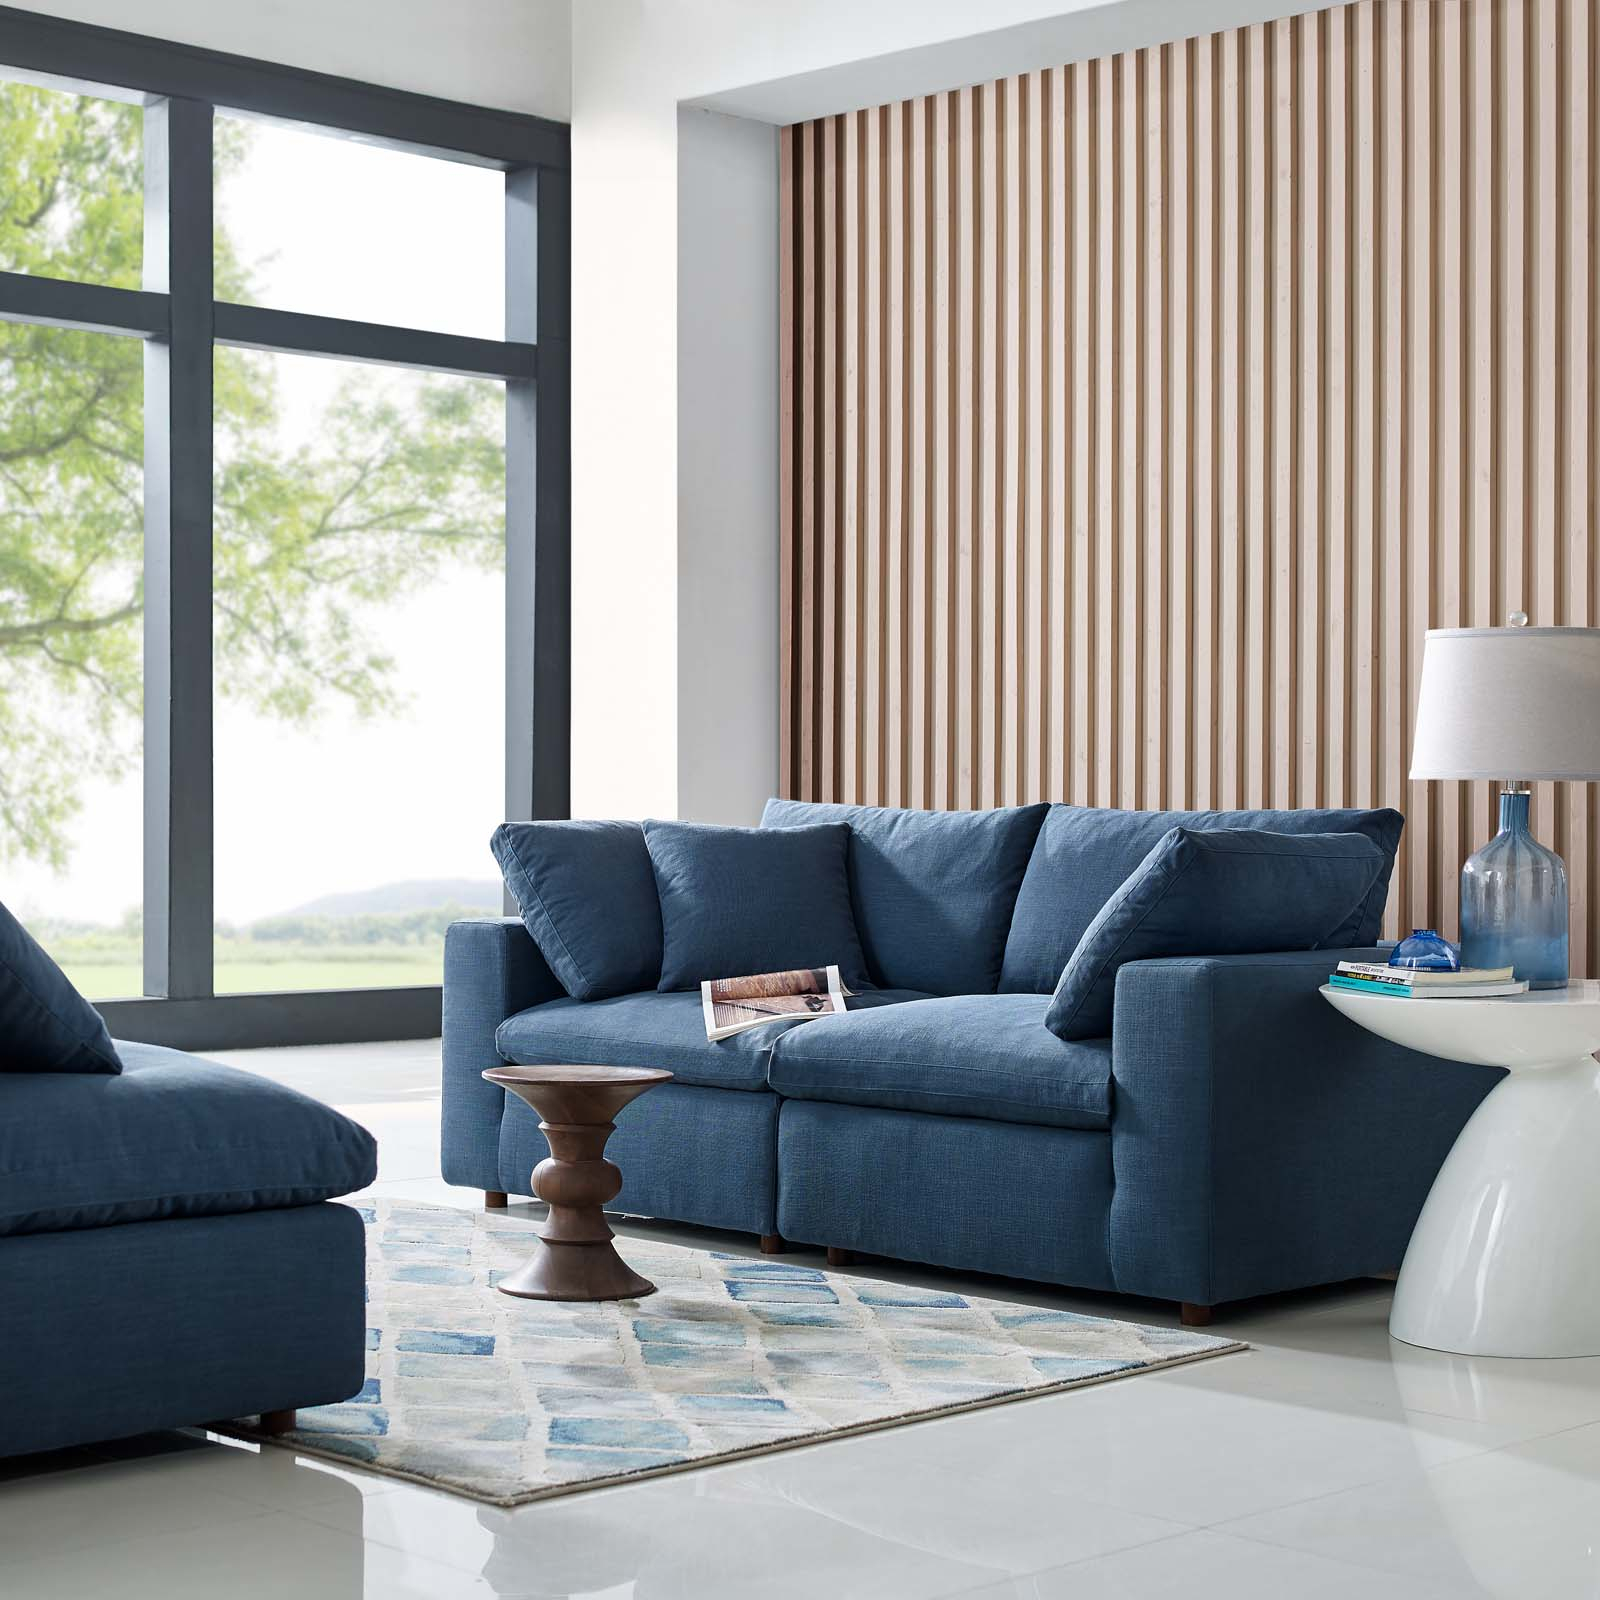 Commix Down Filled Overstuffed 2 Piece Sectional Sofa Set Inside Down Filled Sofas (View 7 of 15)